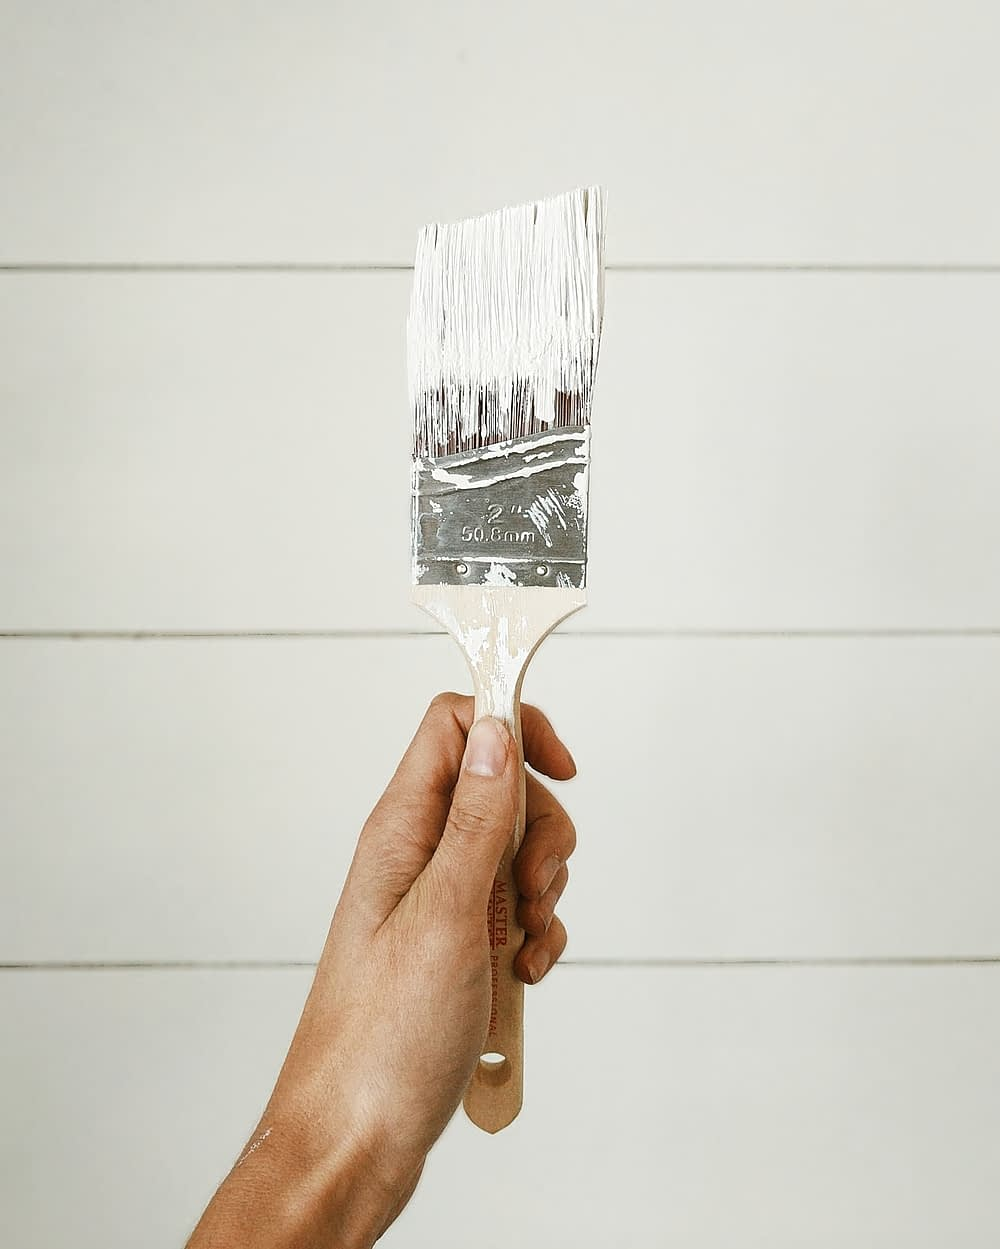 a hand holding a paint brush with white paint on it